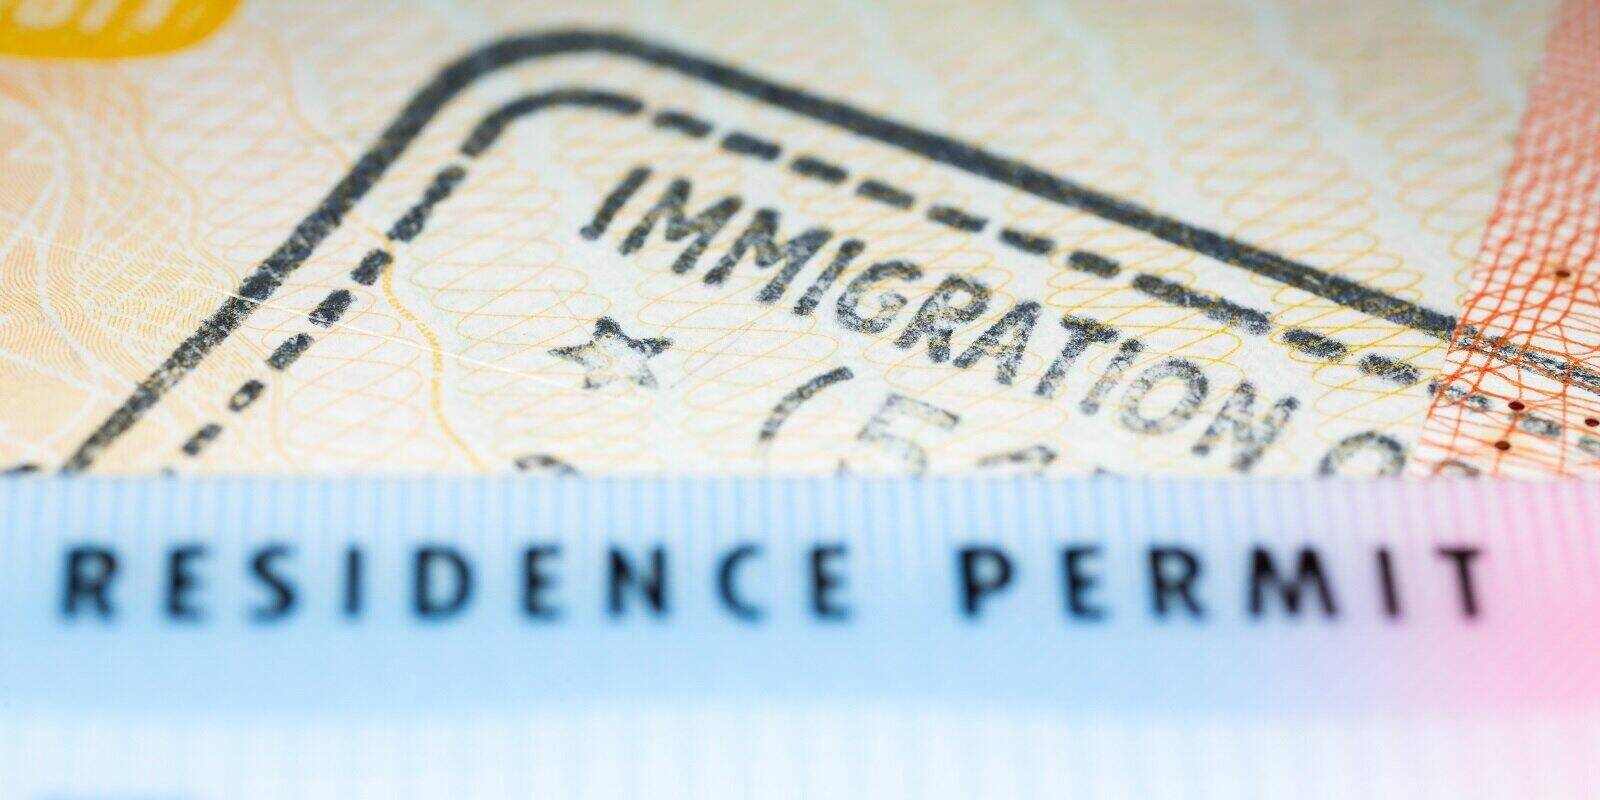 residence permit card over immigration stamp